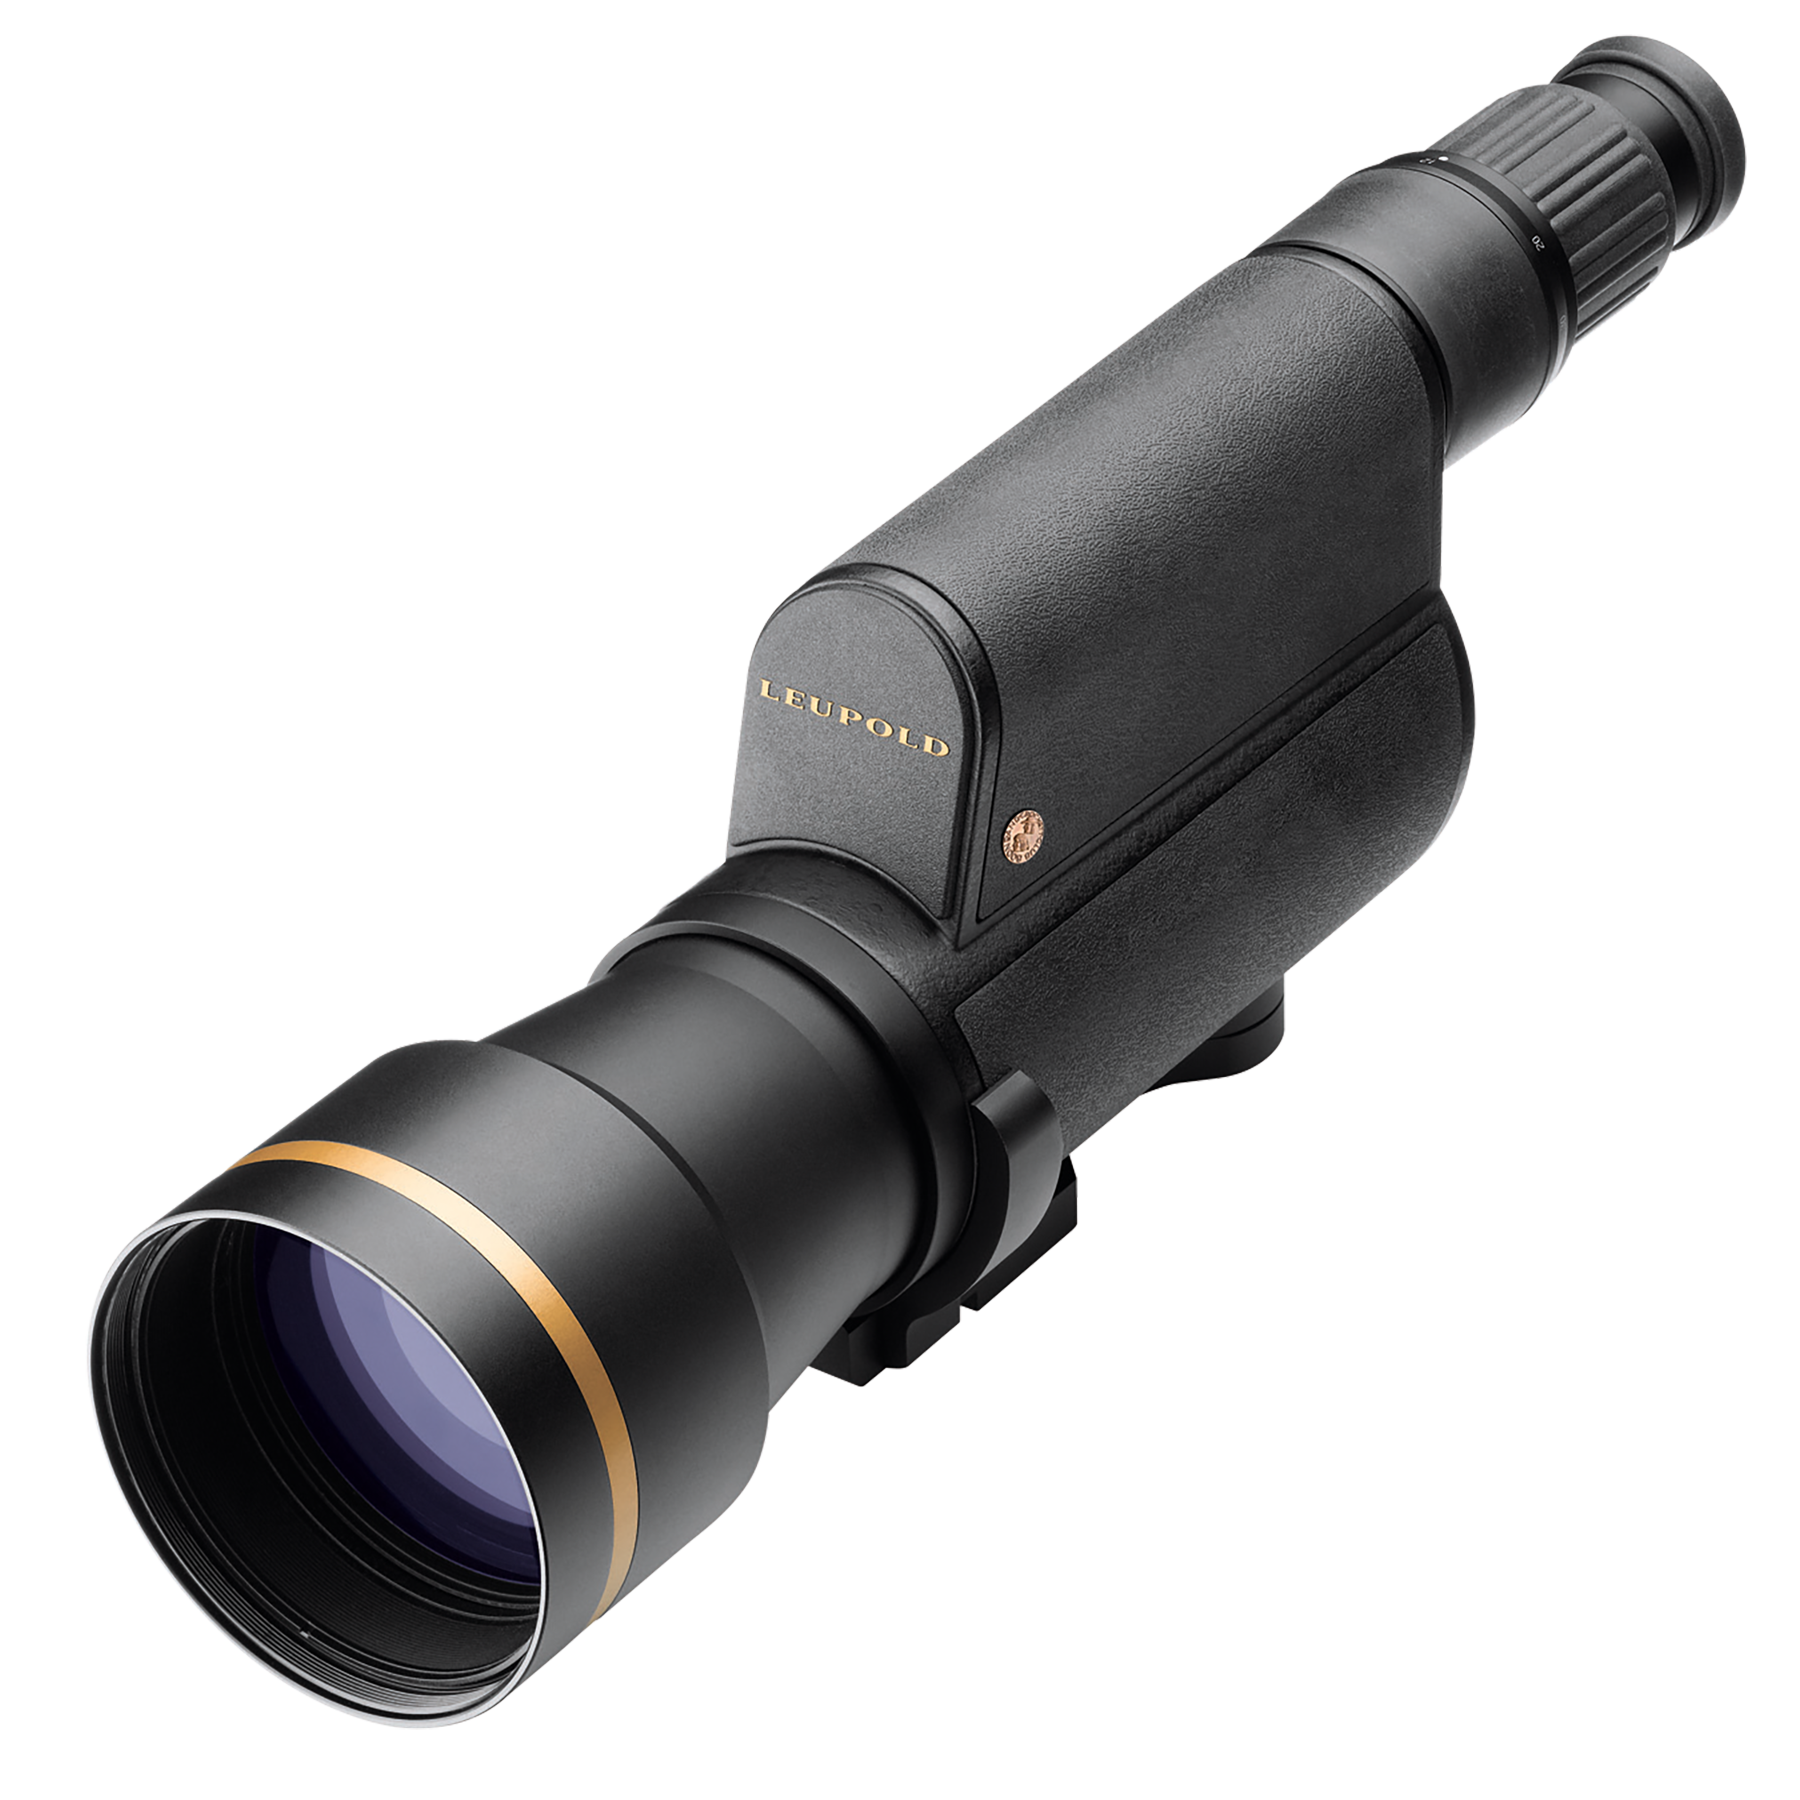 Leupold Gold Ring 20-60x80mm Straight Spotting Scope with Impact Reticle Titanium Gray